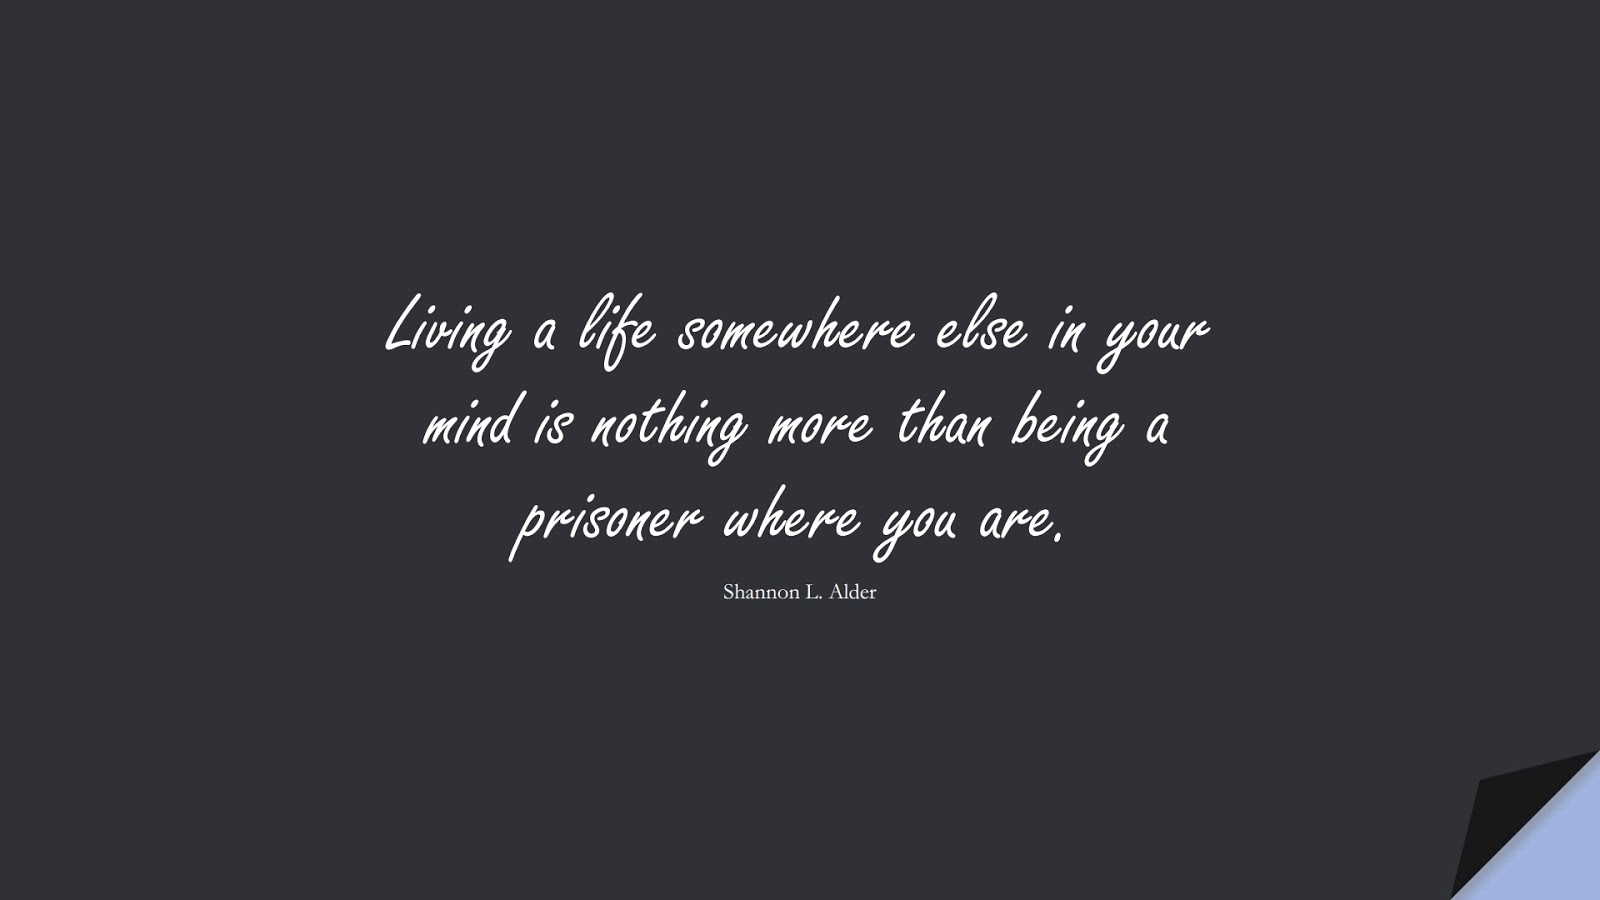 Living a life somewhere else in your mind is nothing more than being a prisoner where you are. (Shannon L. Alder);  #AnxietyQuotes